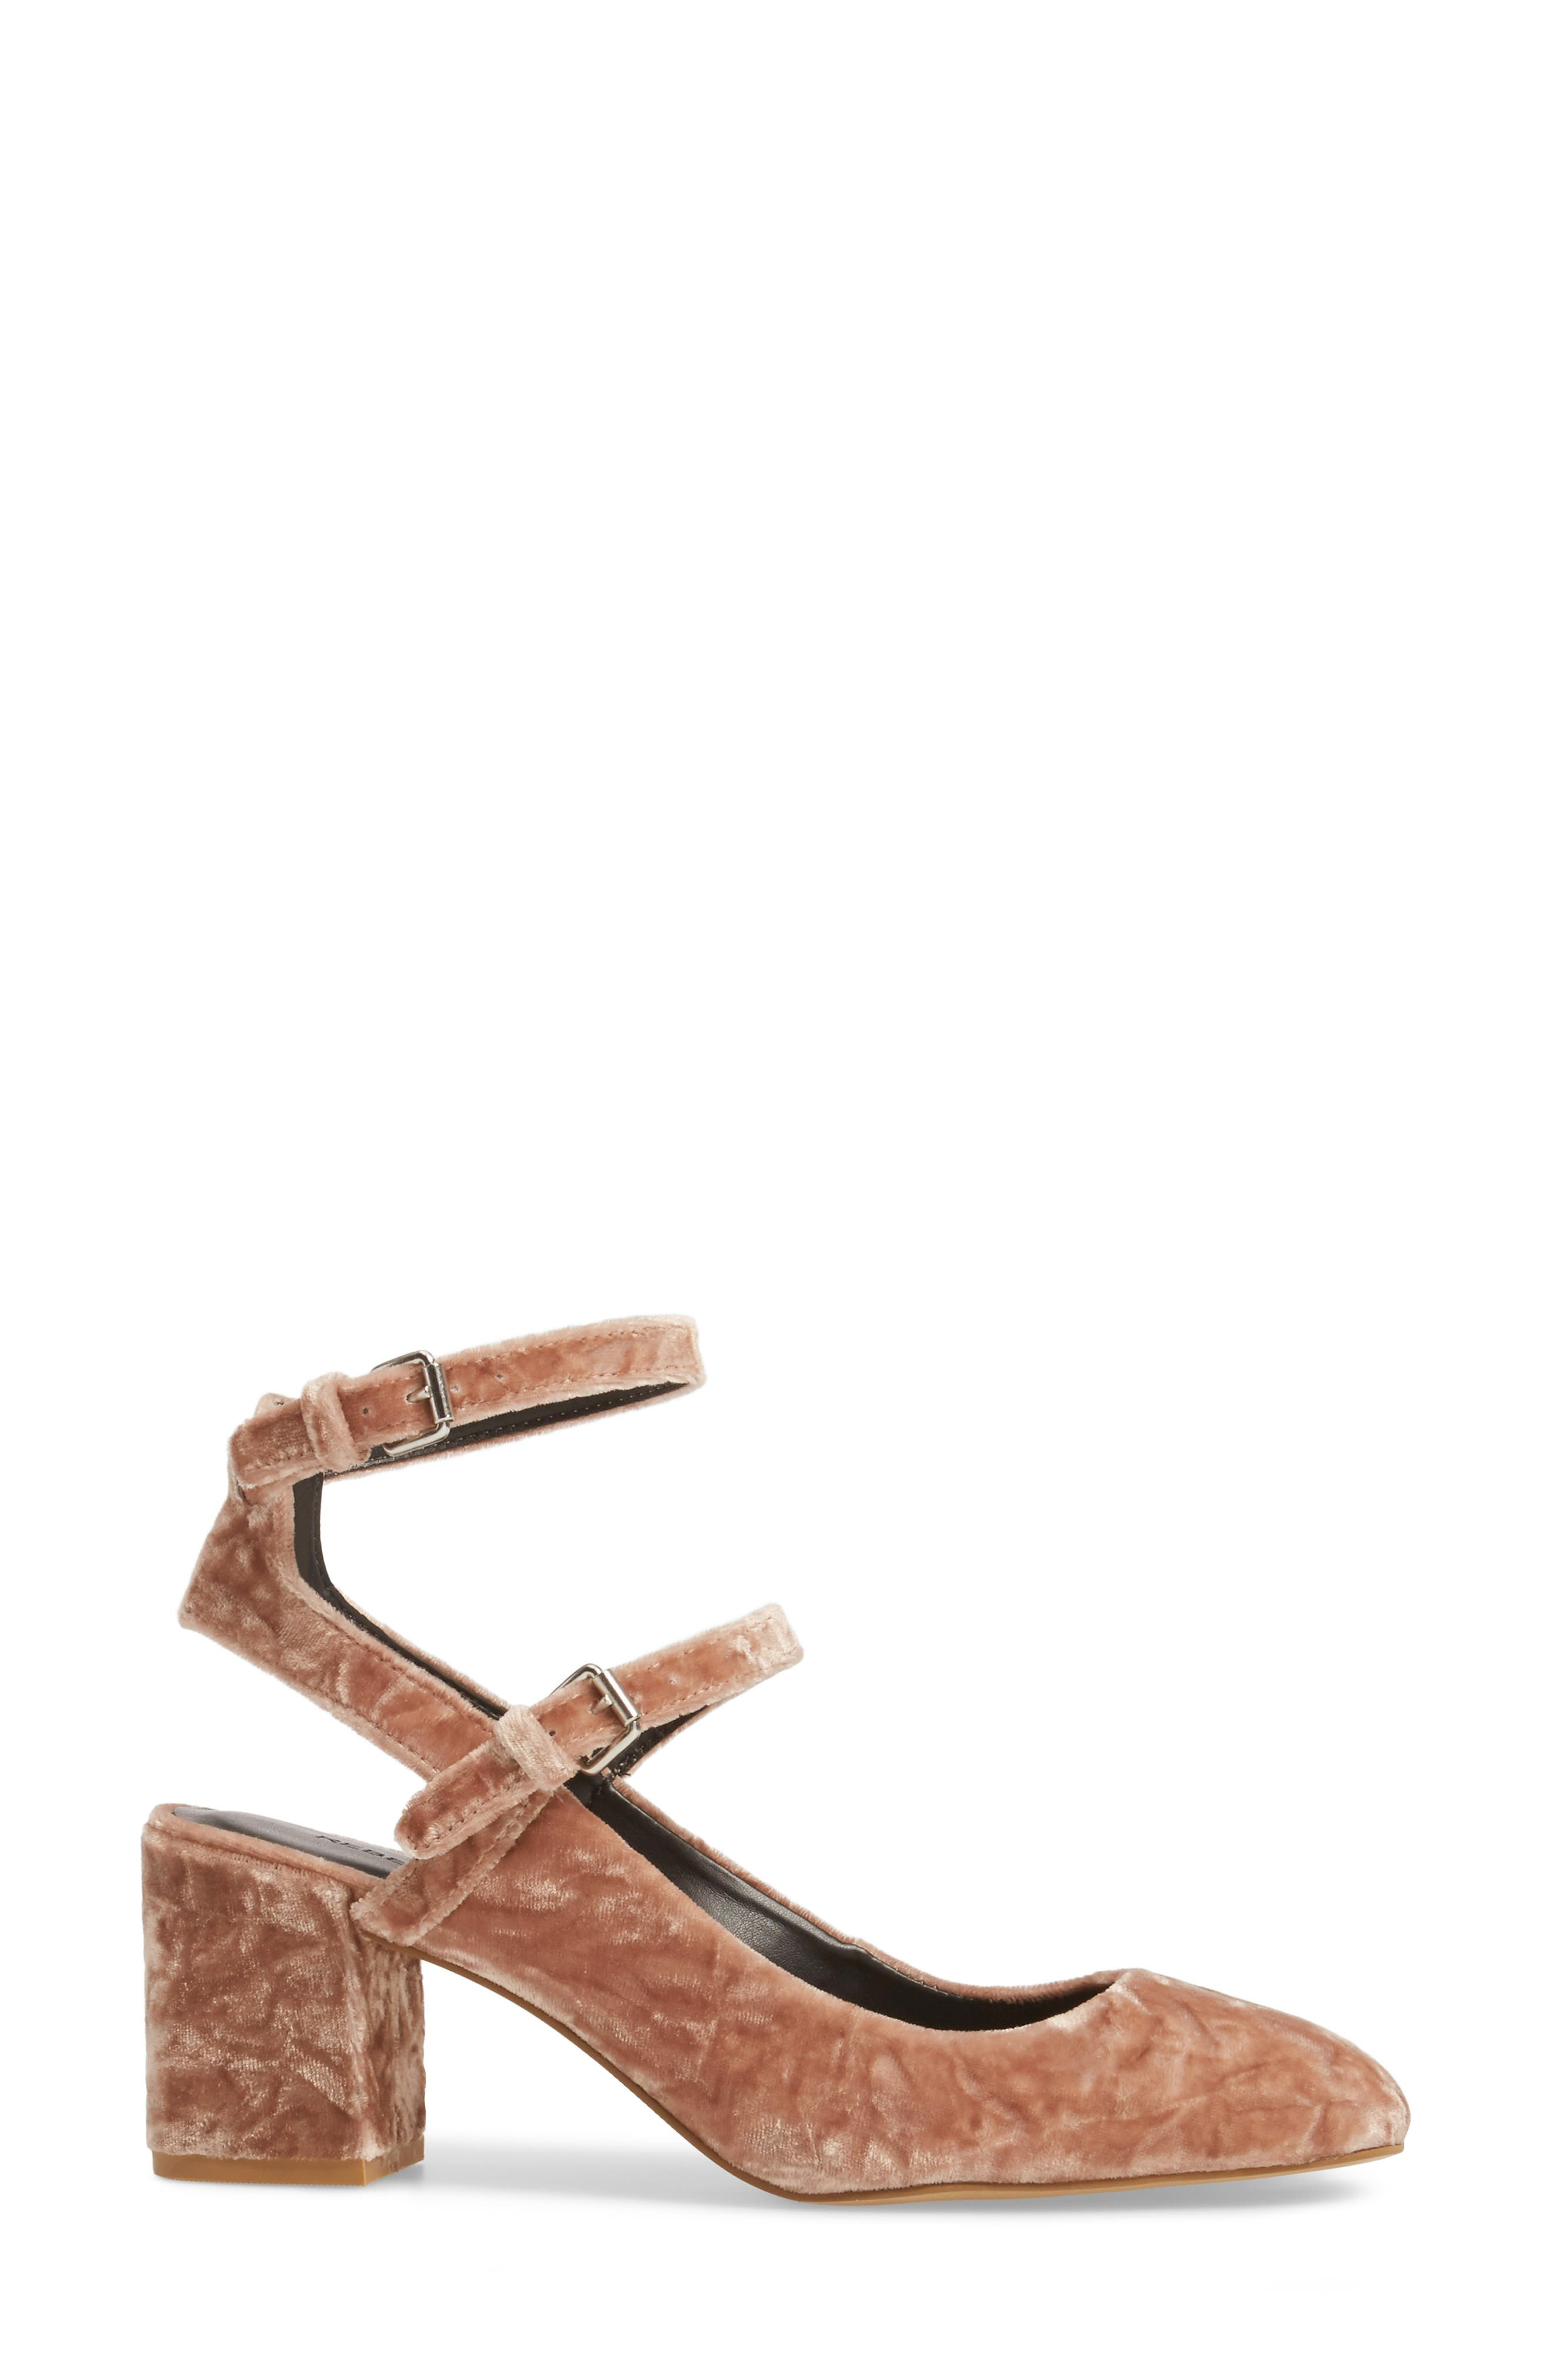 Alternate Image 3  - Rebecca Minkoff 'Brooke' Ankle Strap Pump (Women)